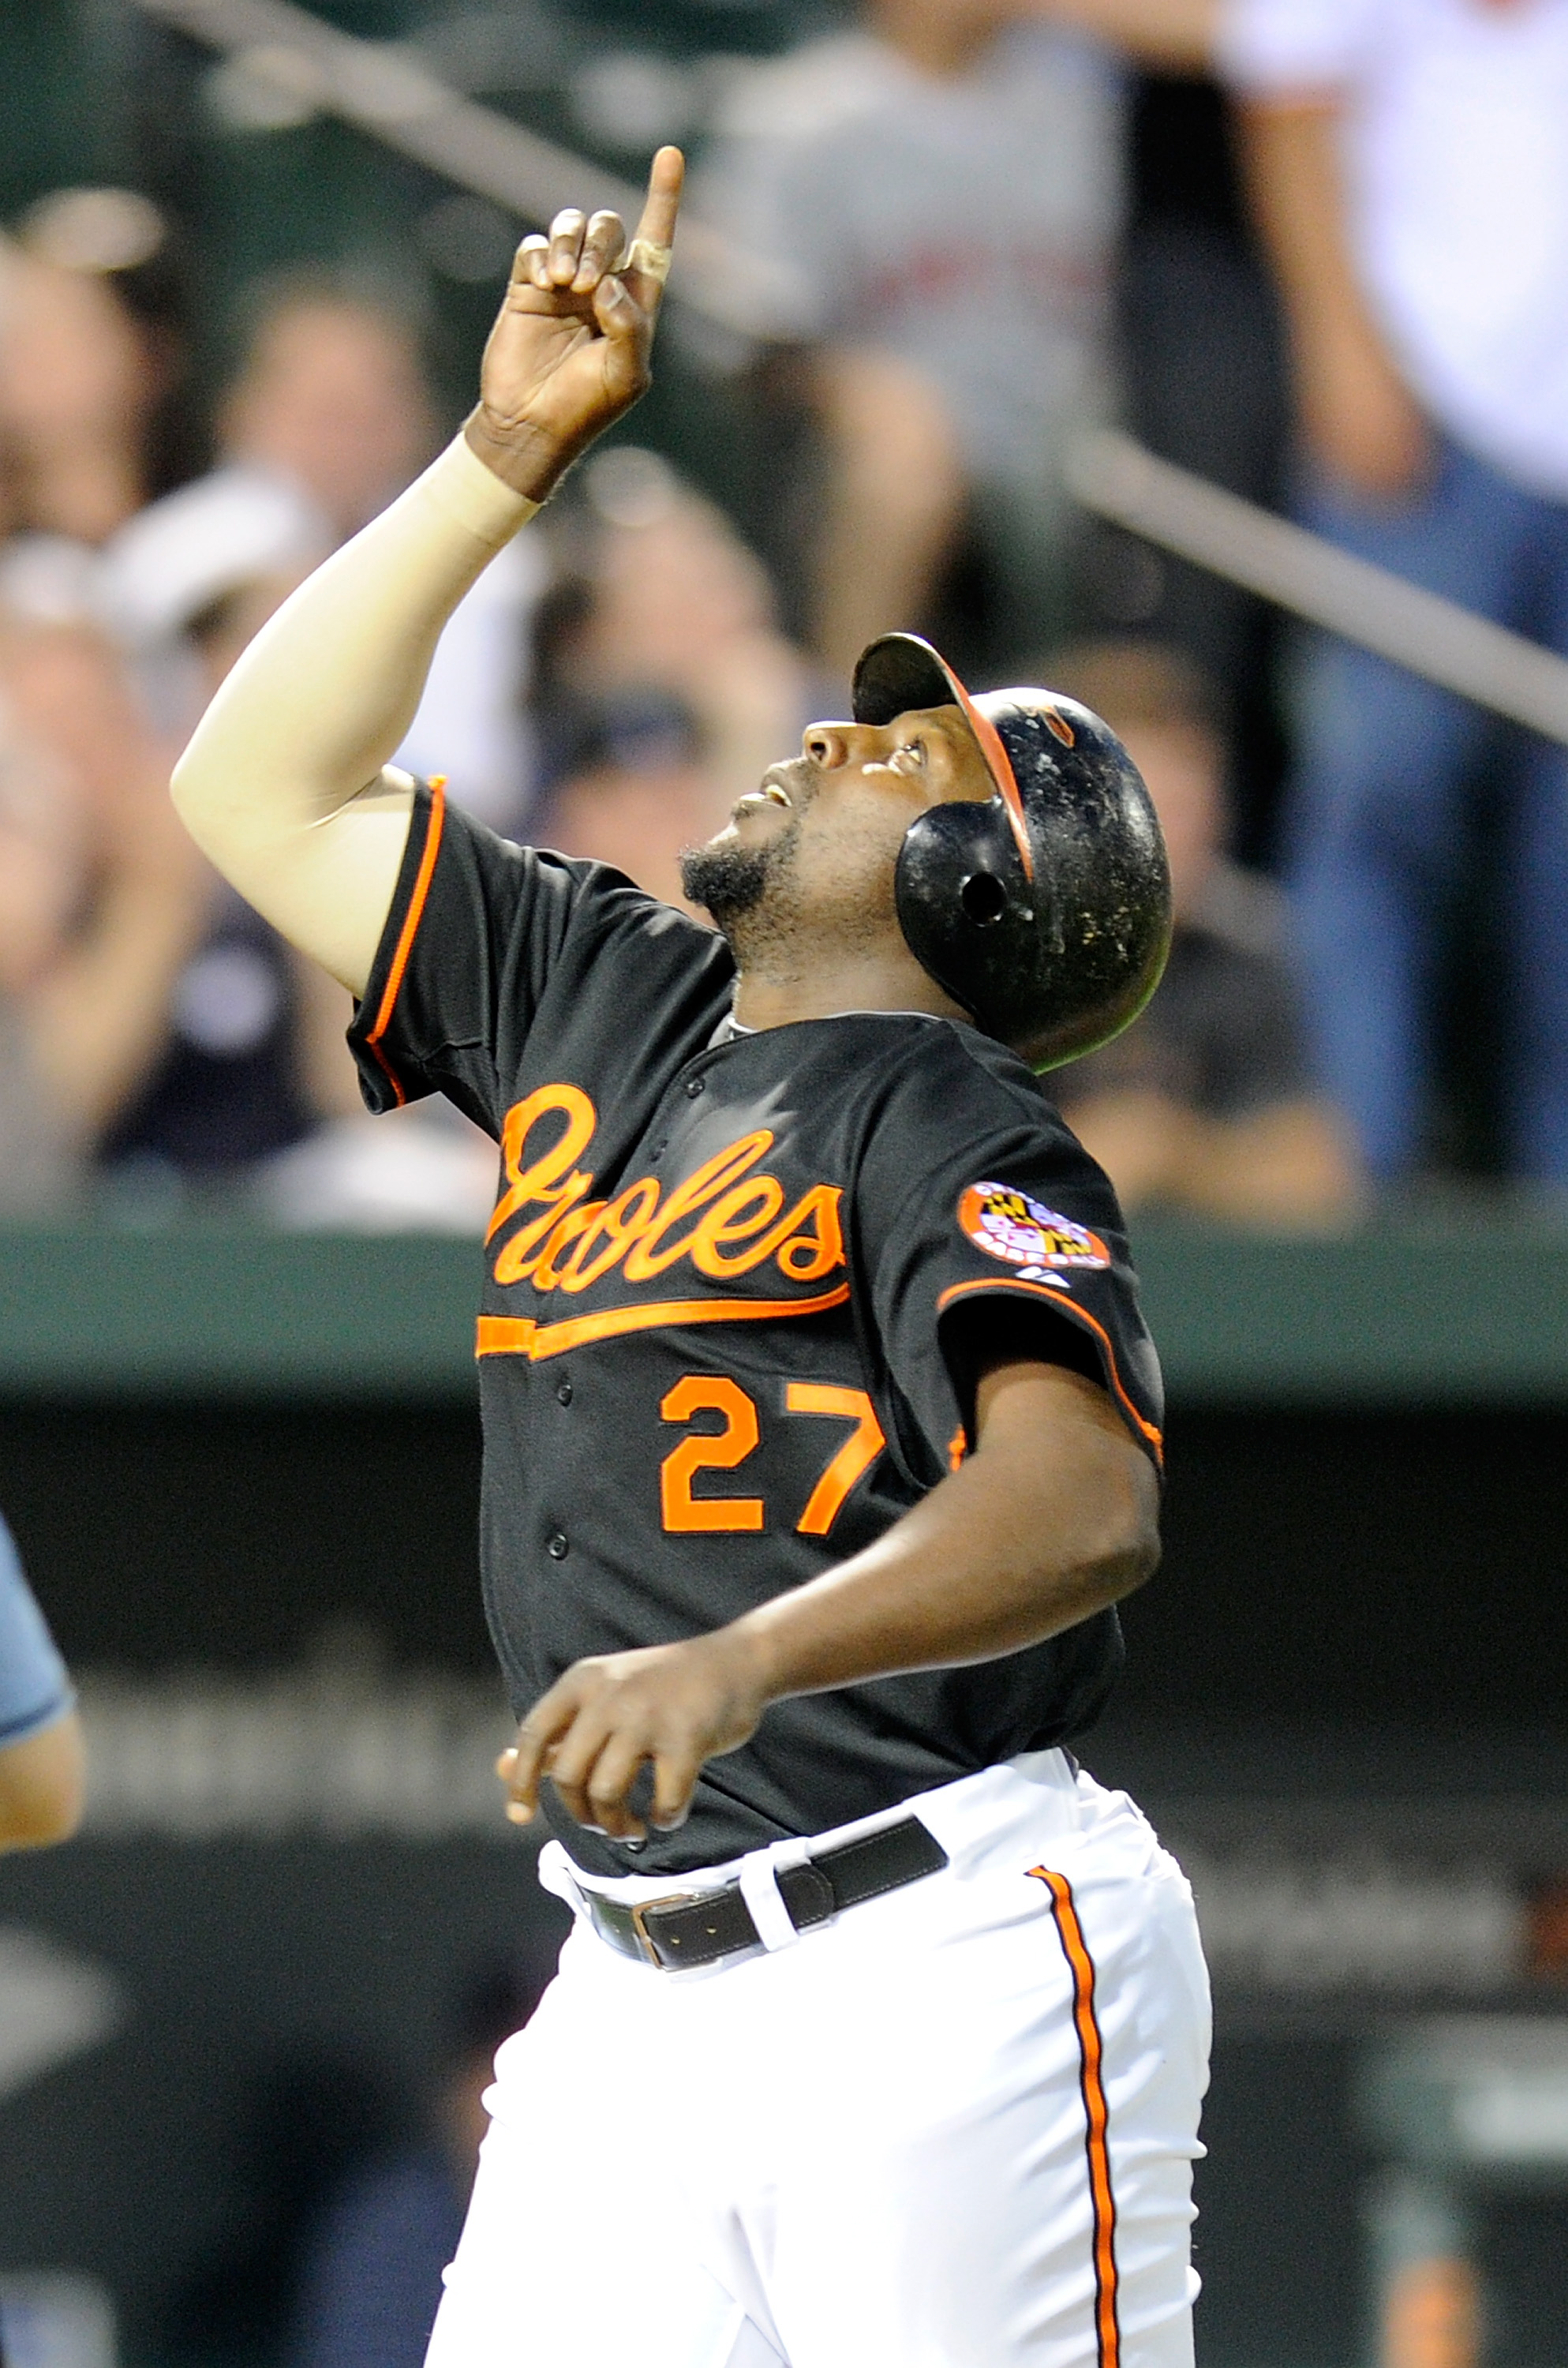 BALTIMORE, MD - APRIL 20:  Vladimir Guerrero #27 of the Baltimore Orioles celebrates after hitting a home run in the third inning against the Minnesota Twins at Oriole Park at Camden Yards on April 20, 2011 in Baltimore, Maryland.  (Photo by Greg Fiume/Ge